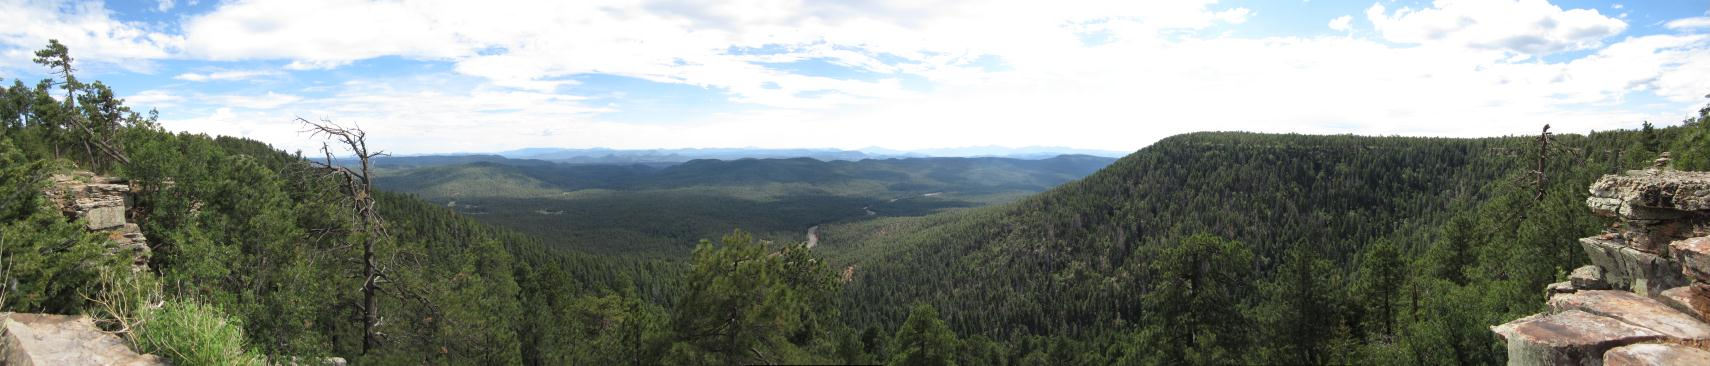 Photo of Mogollon Rim by J Davis